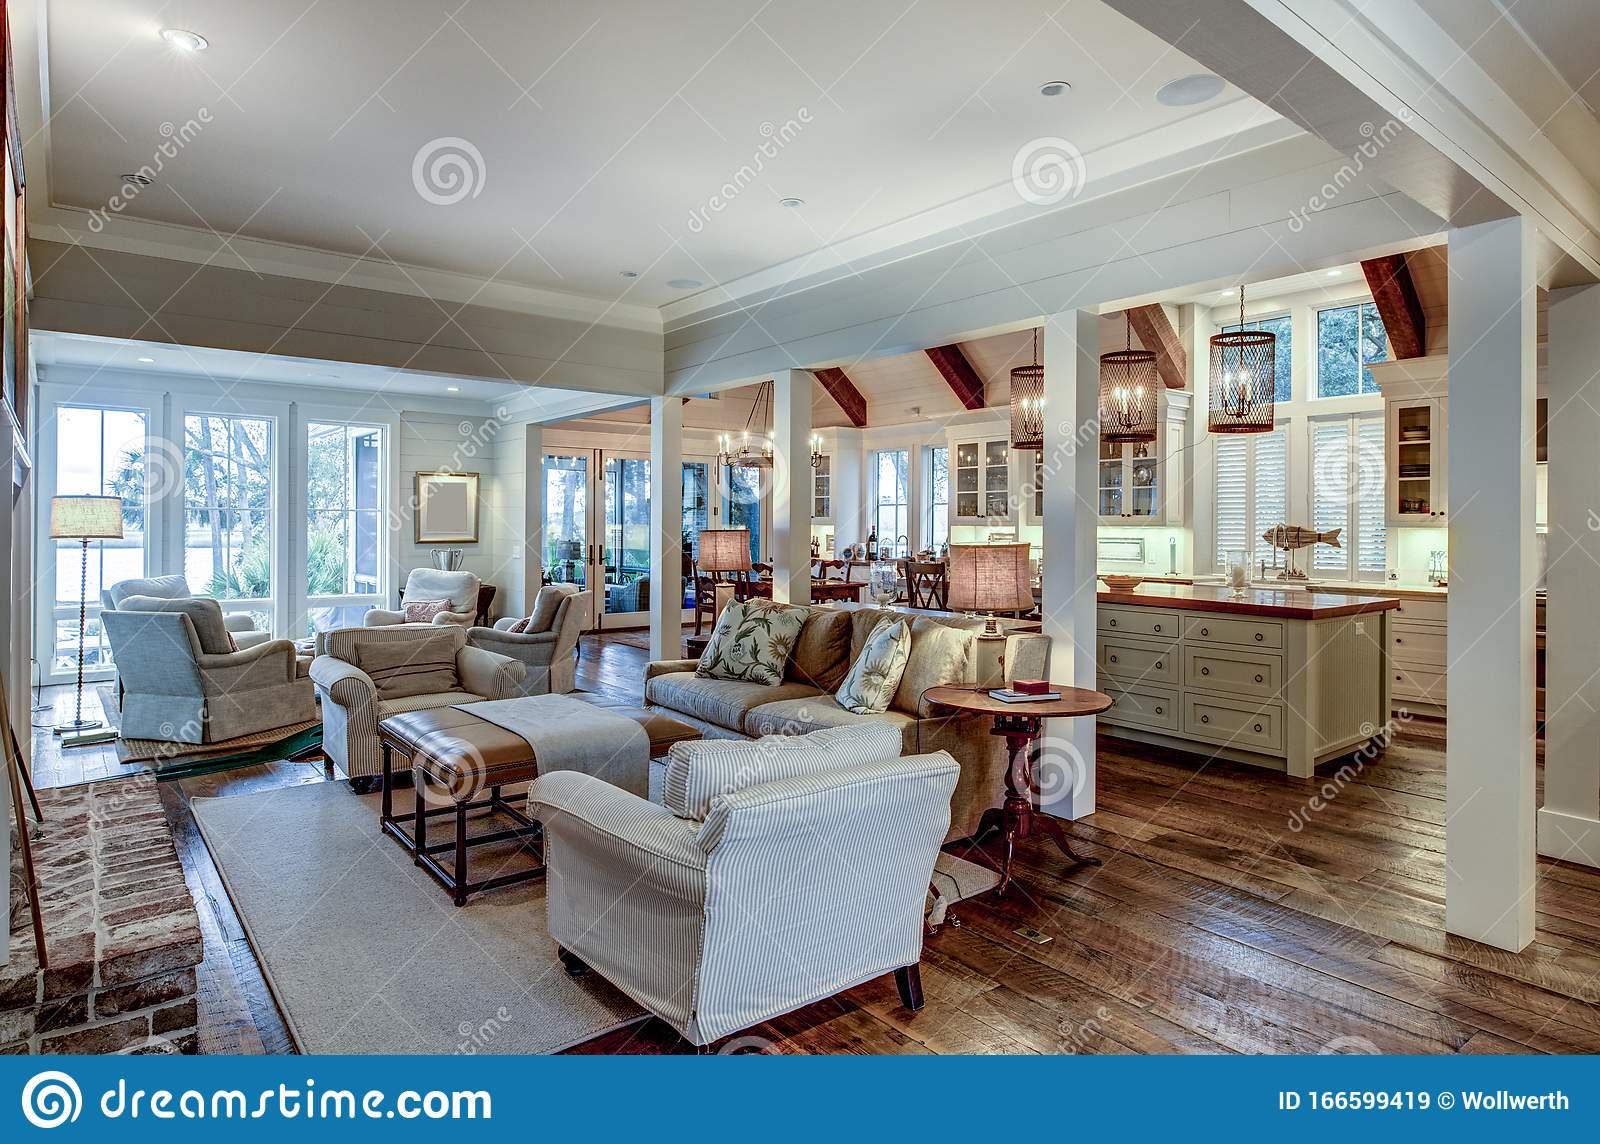 Large Open Concept Home Interior with Living Room, Kitchen, and ...